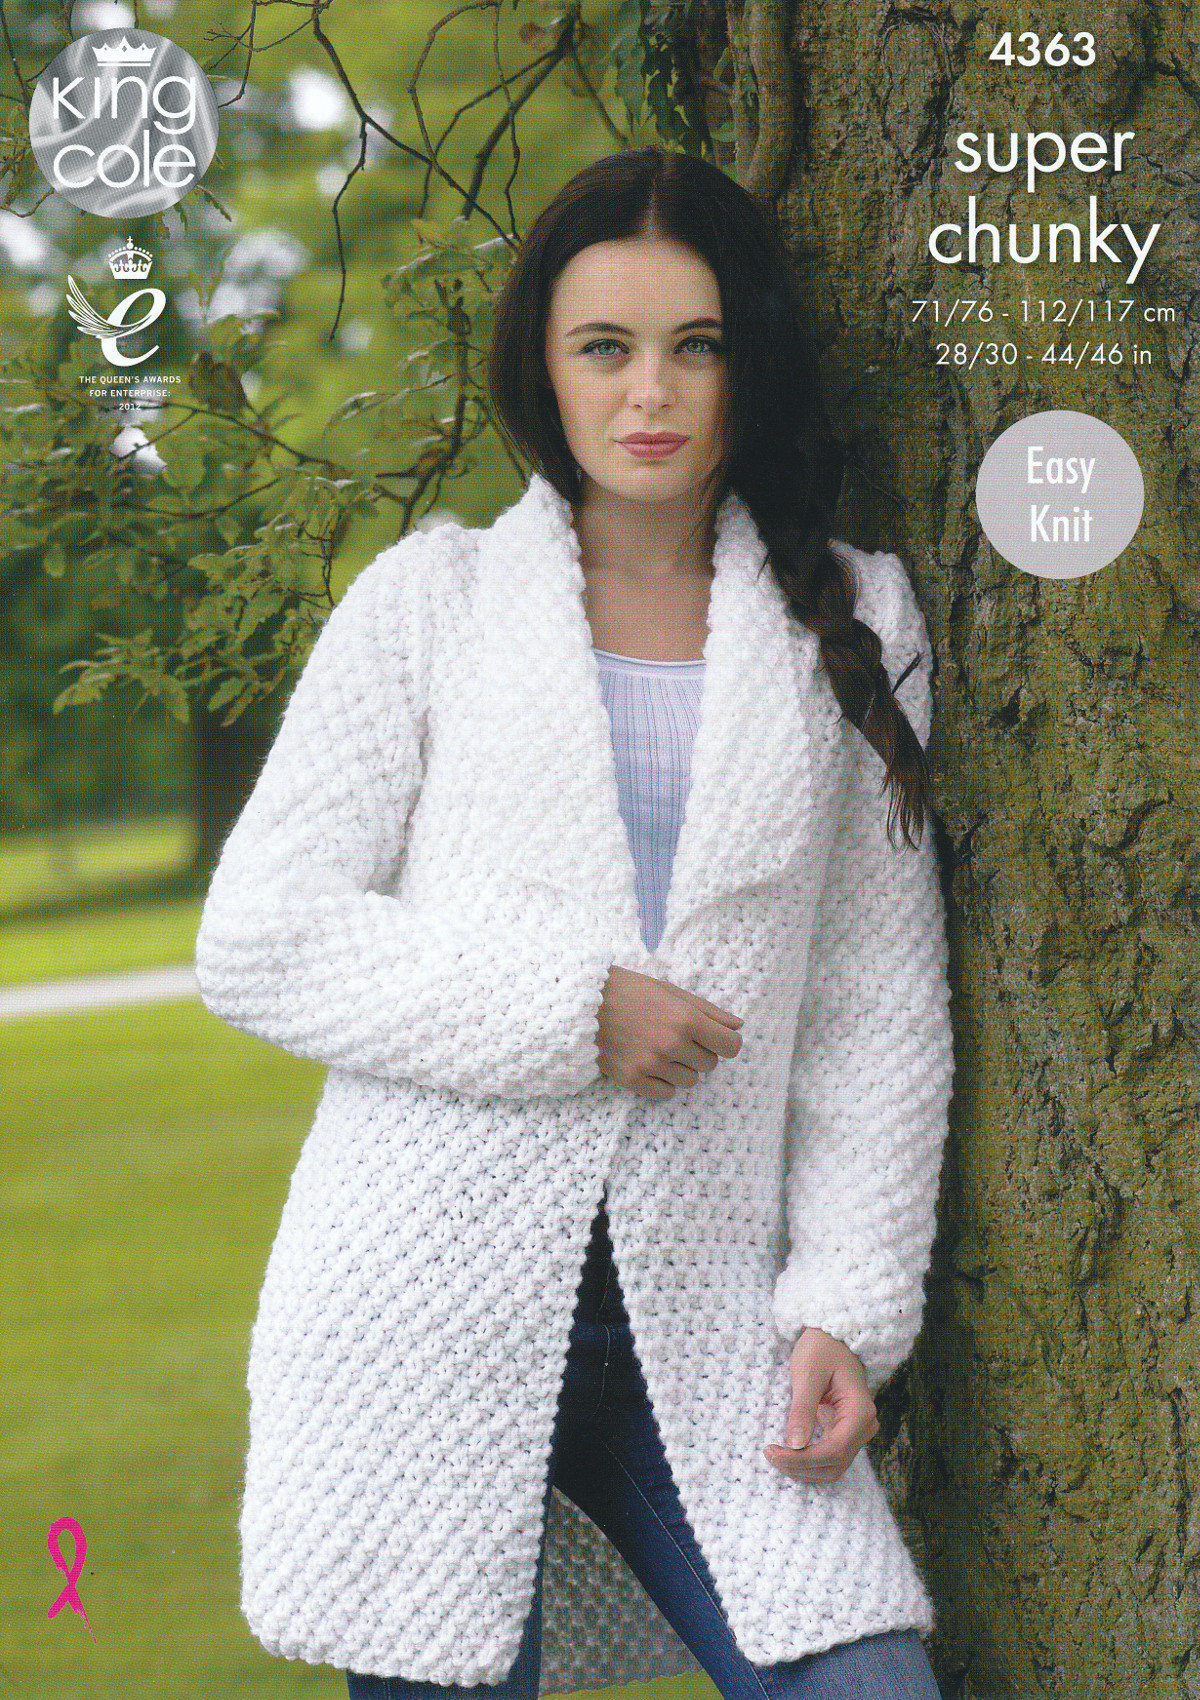 Knitting Patterns For Larger Ladies : Ladies Super Chunky Knitting Pattern King Cole Easy Knit Sweater & Jacket...